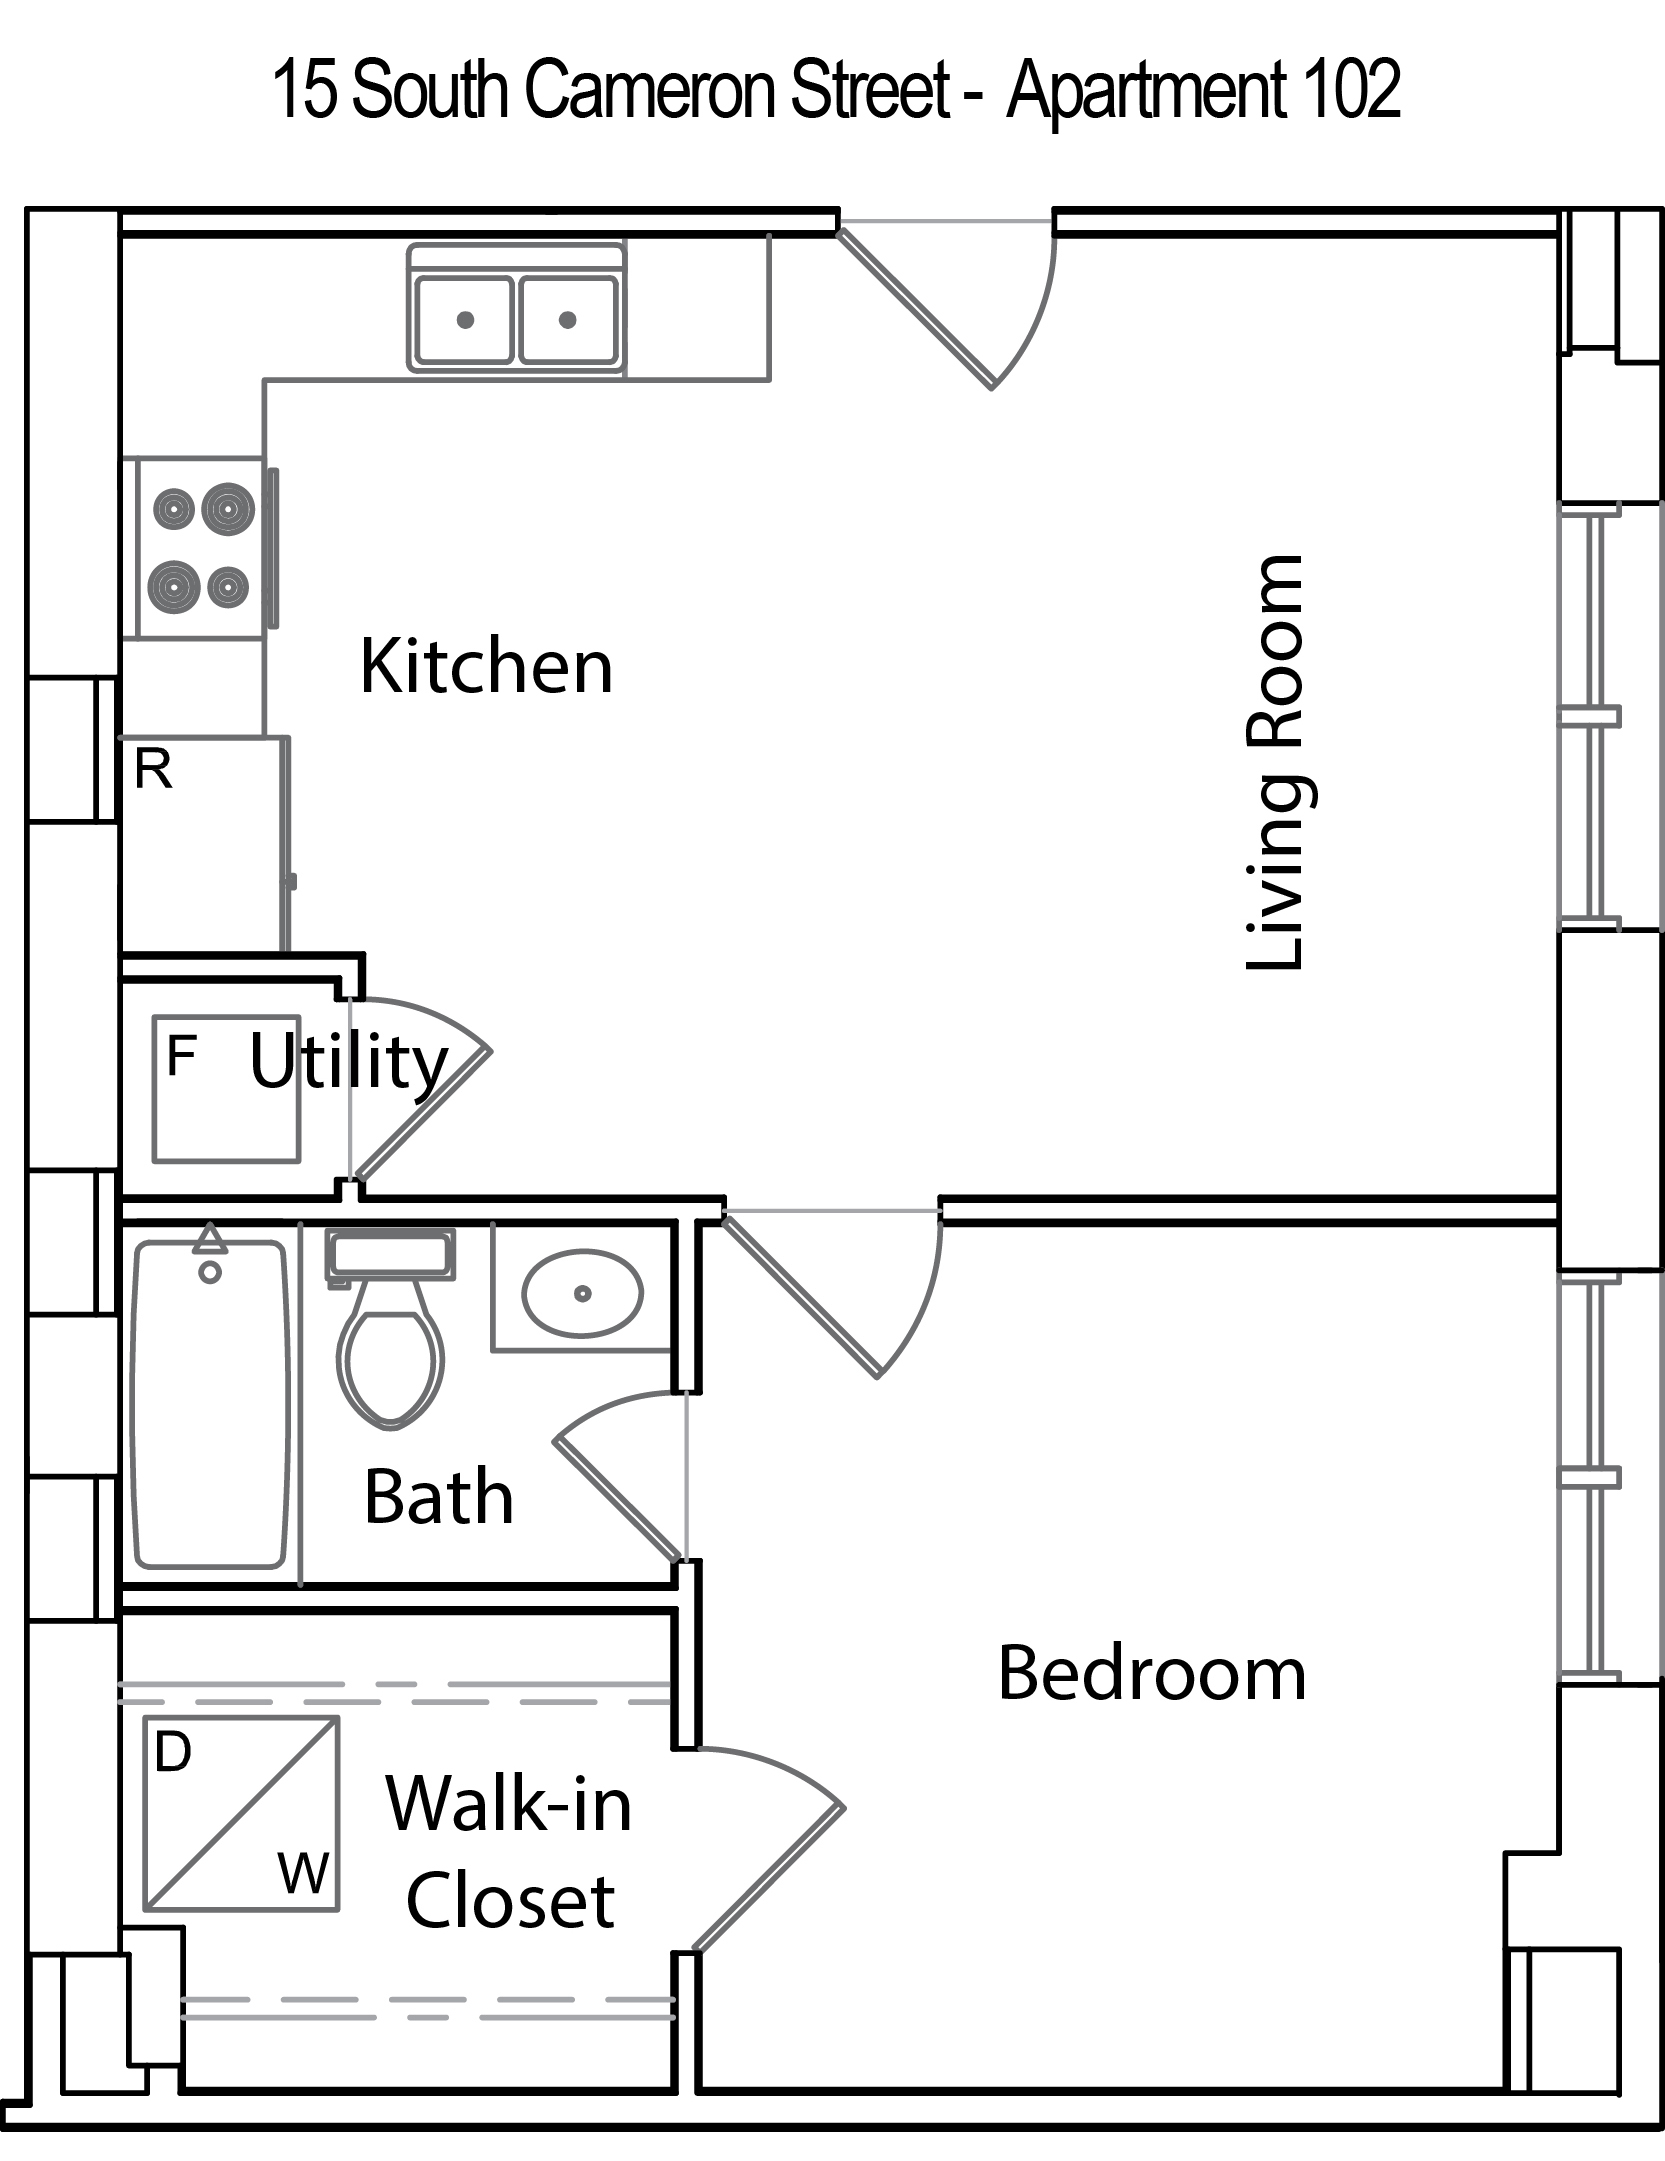 Click here to view floor plan. 15 South Cameron Street   Apartment 102   Rented   OakCrest Properties